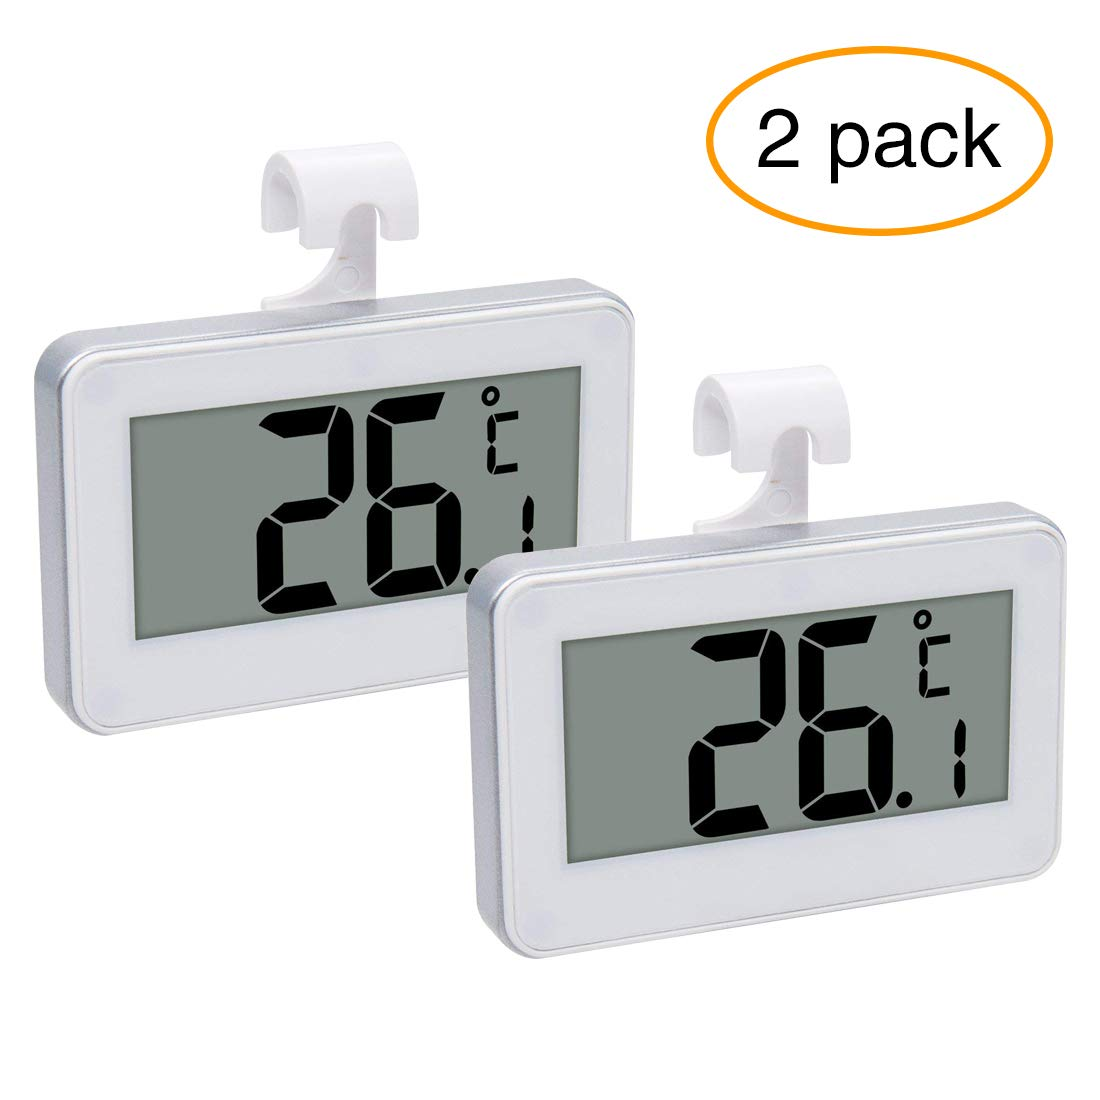 2 Pack Refrigerator Thermometer Digital Freezer Thermometer Waterproof Room Fridge Thermometer with Hook, Large LCD Display for Easy Read by YOBAYE